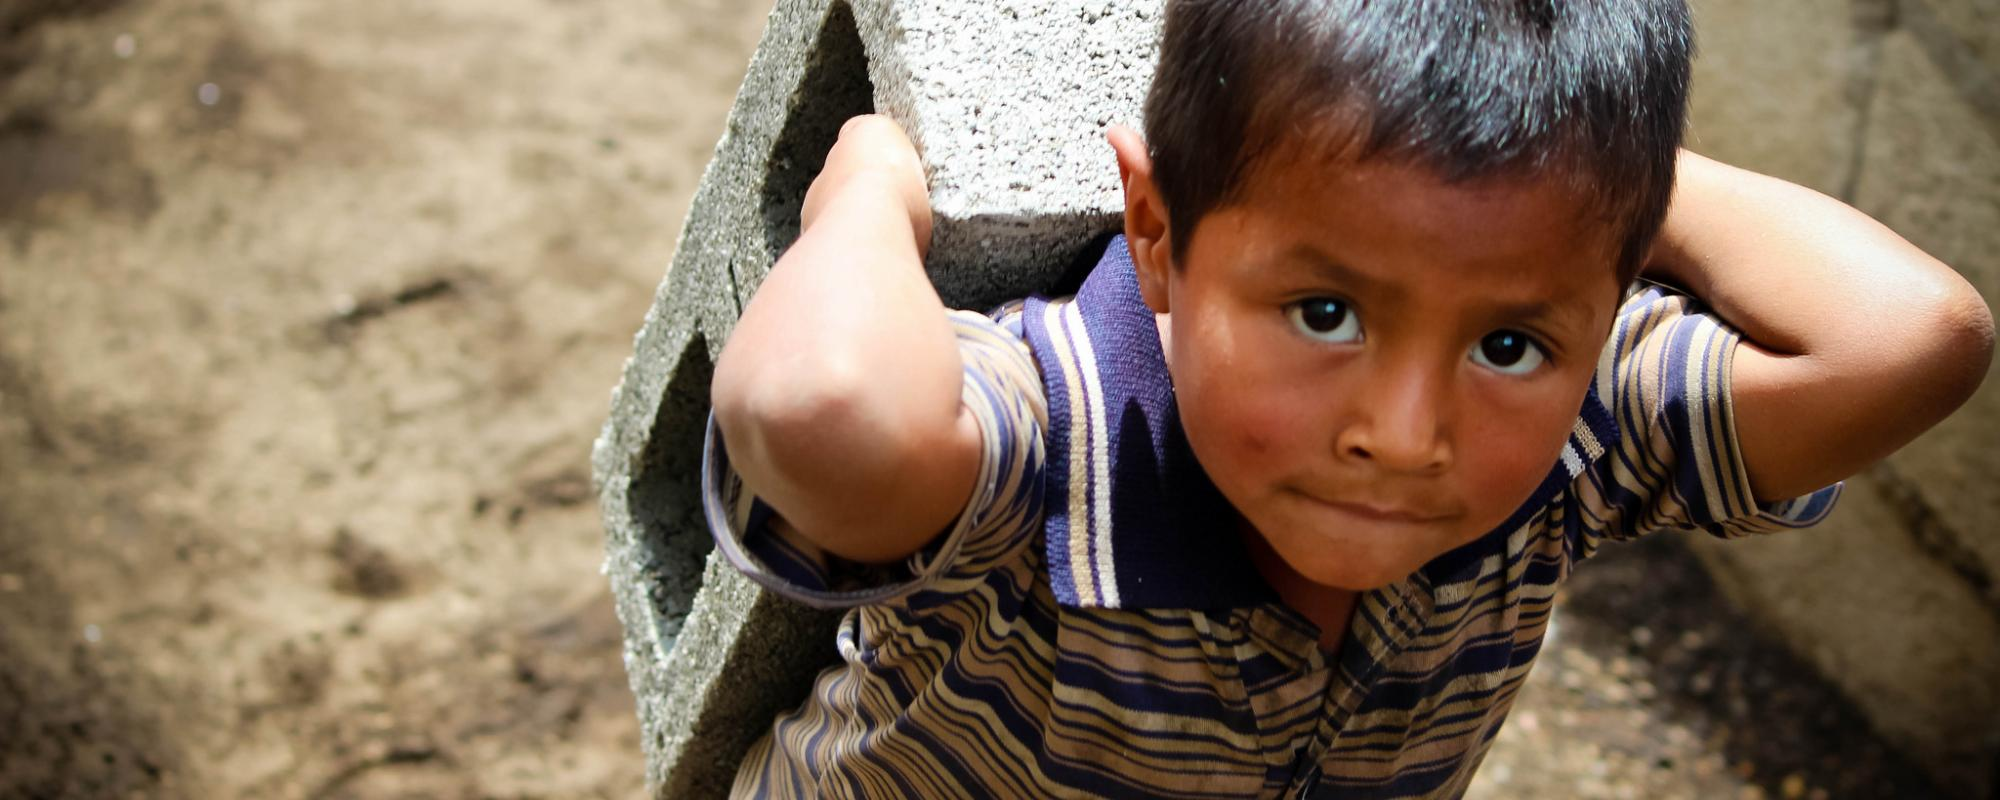 young child carrying a concrete block